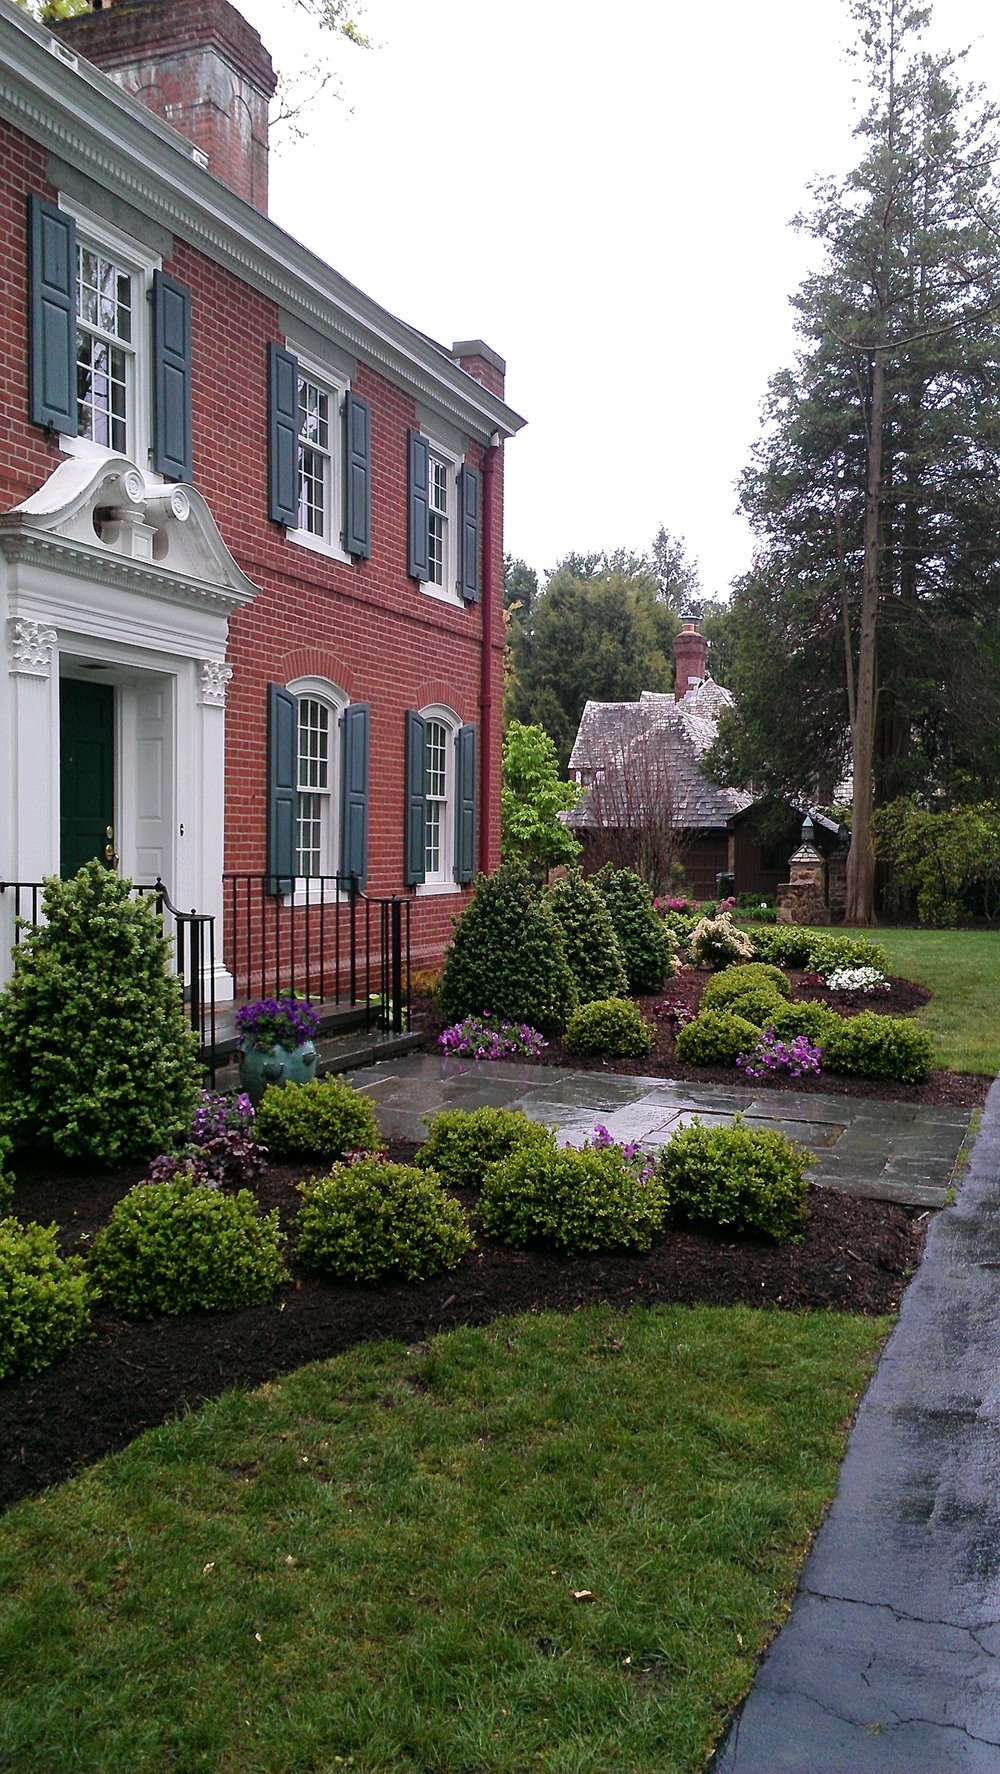 Landscaping by Southgate Nurserymen